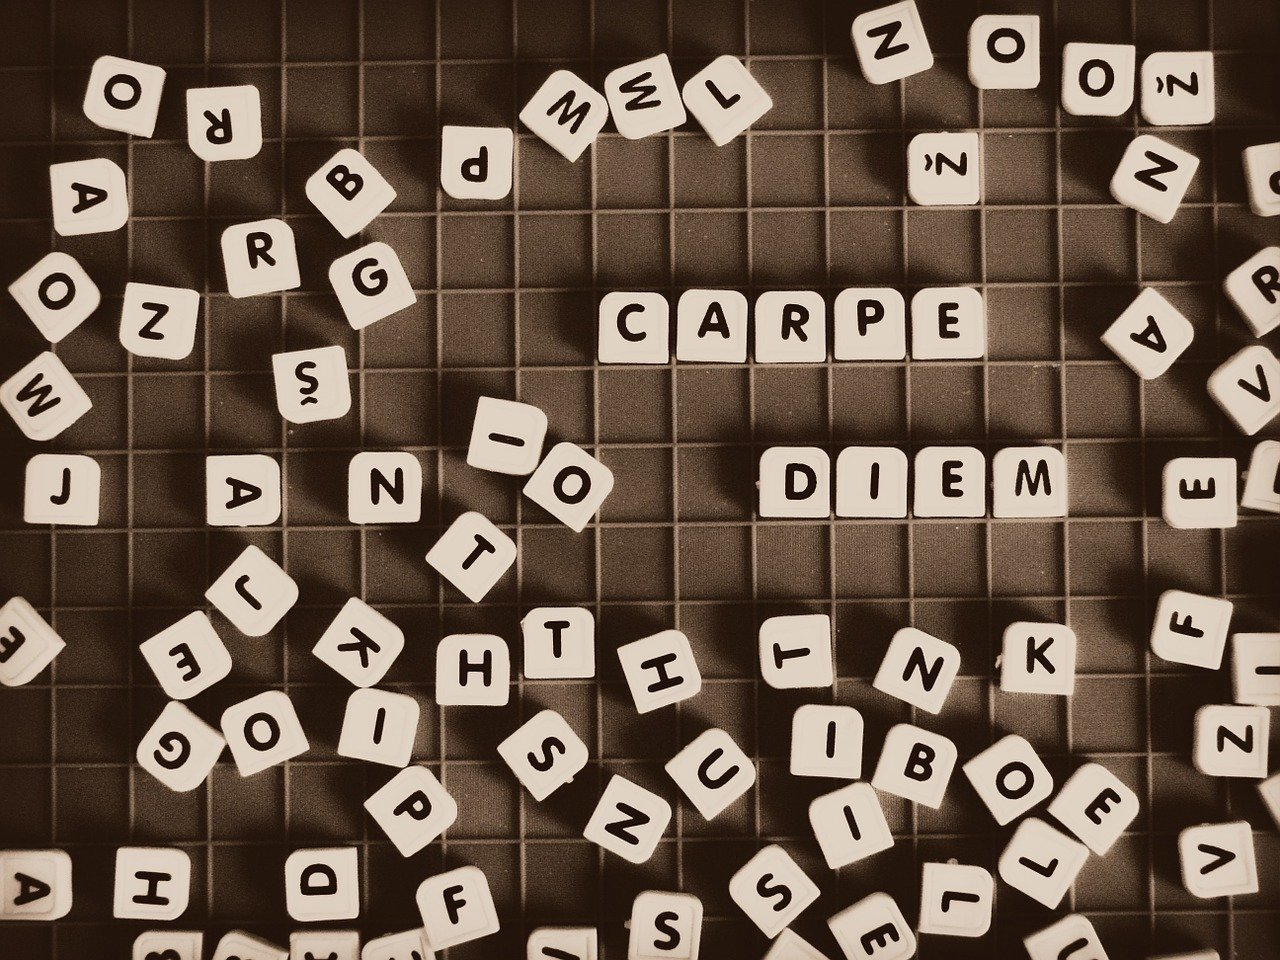 Life is a jumbled words game that we try to solve.